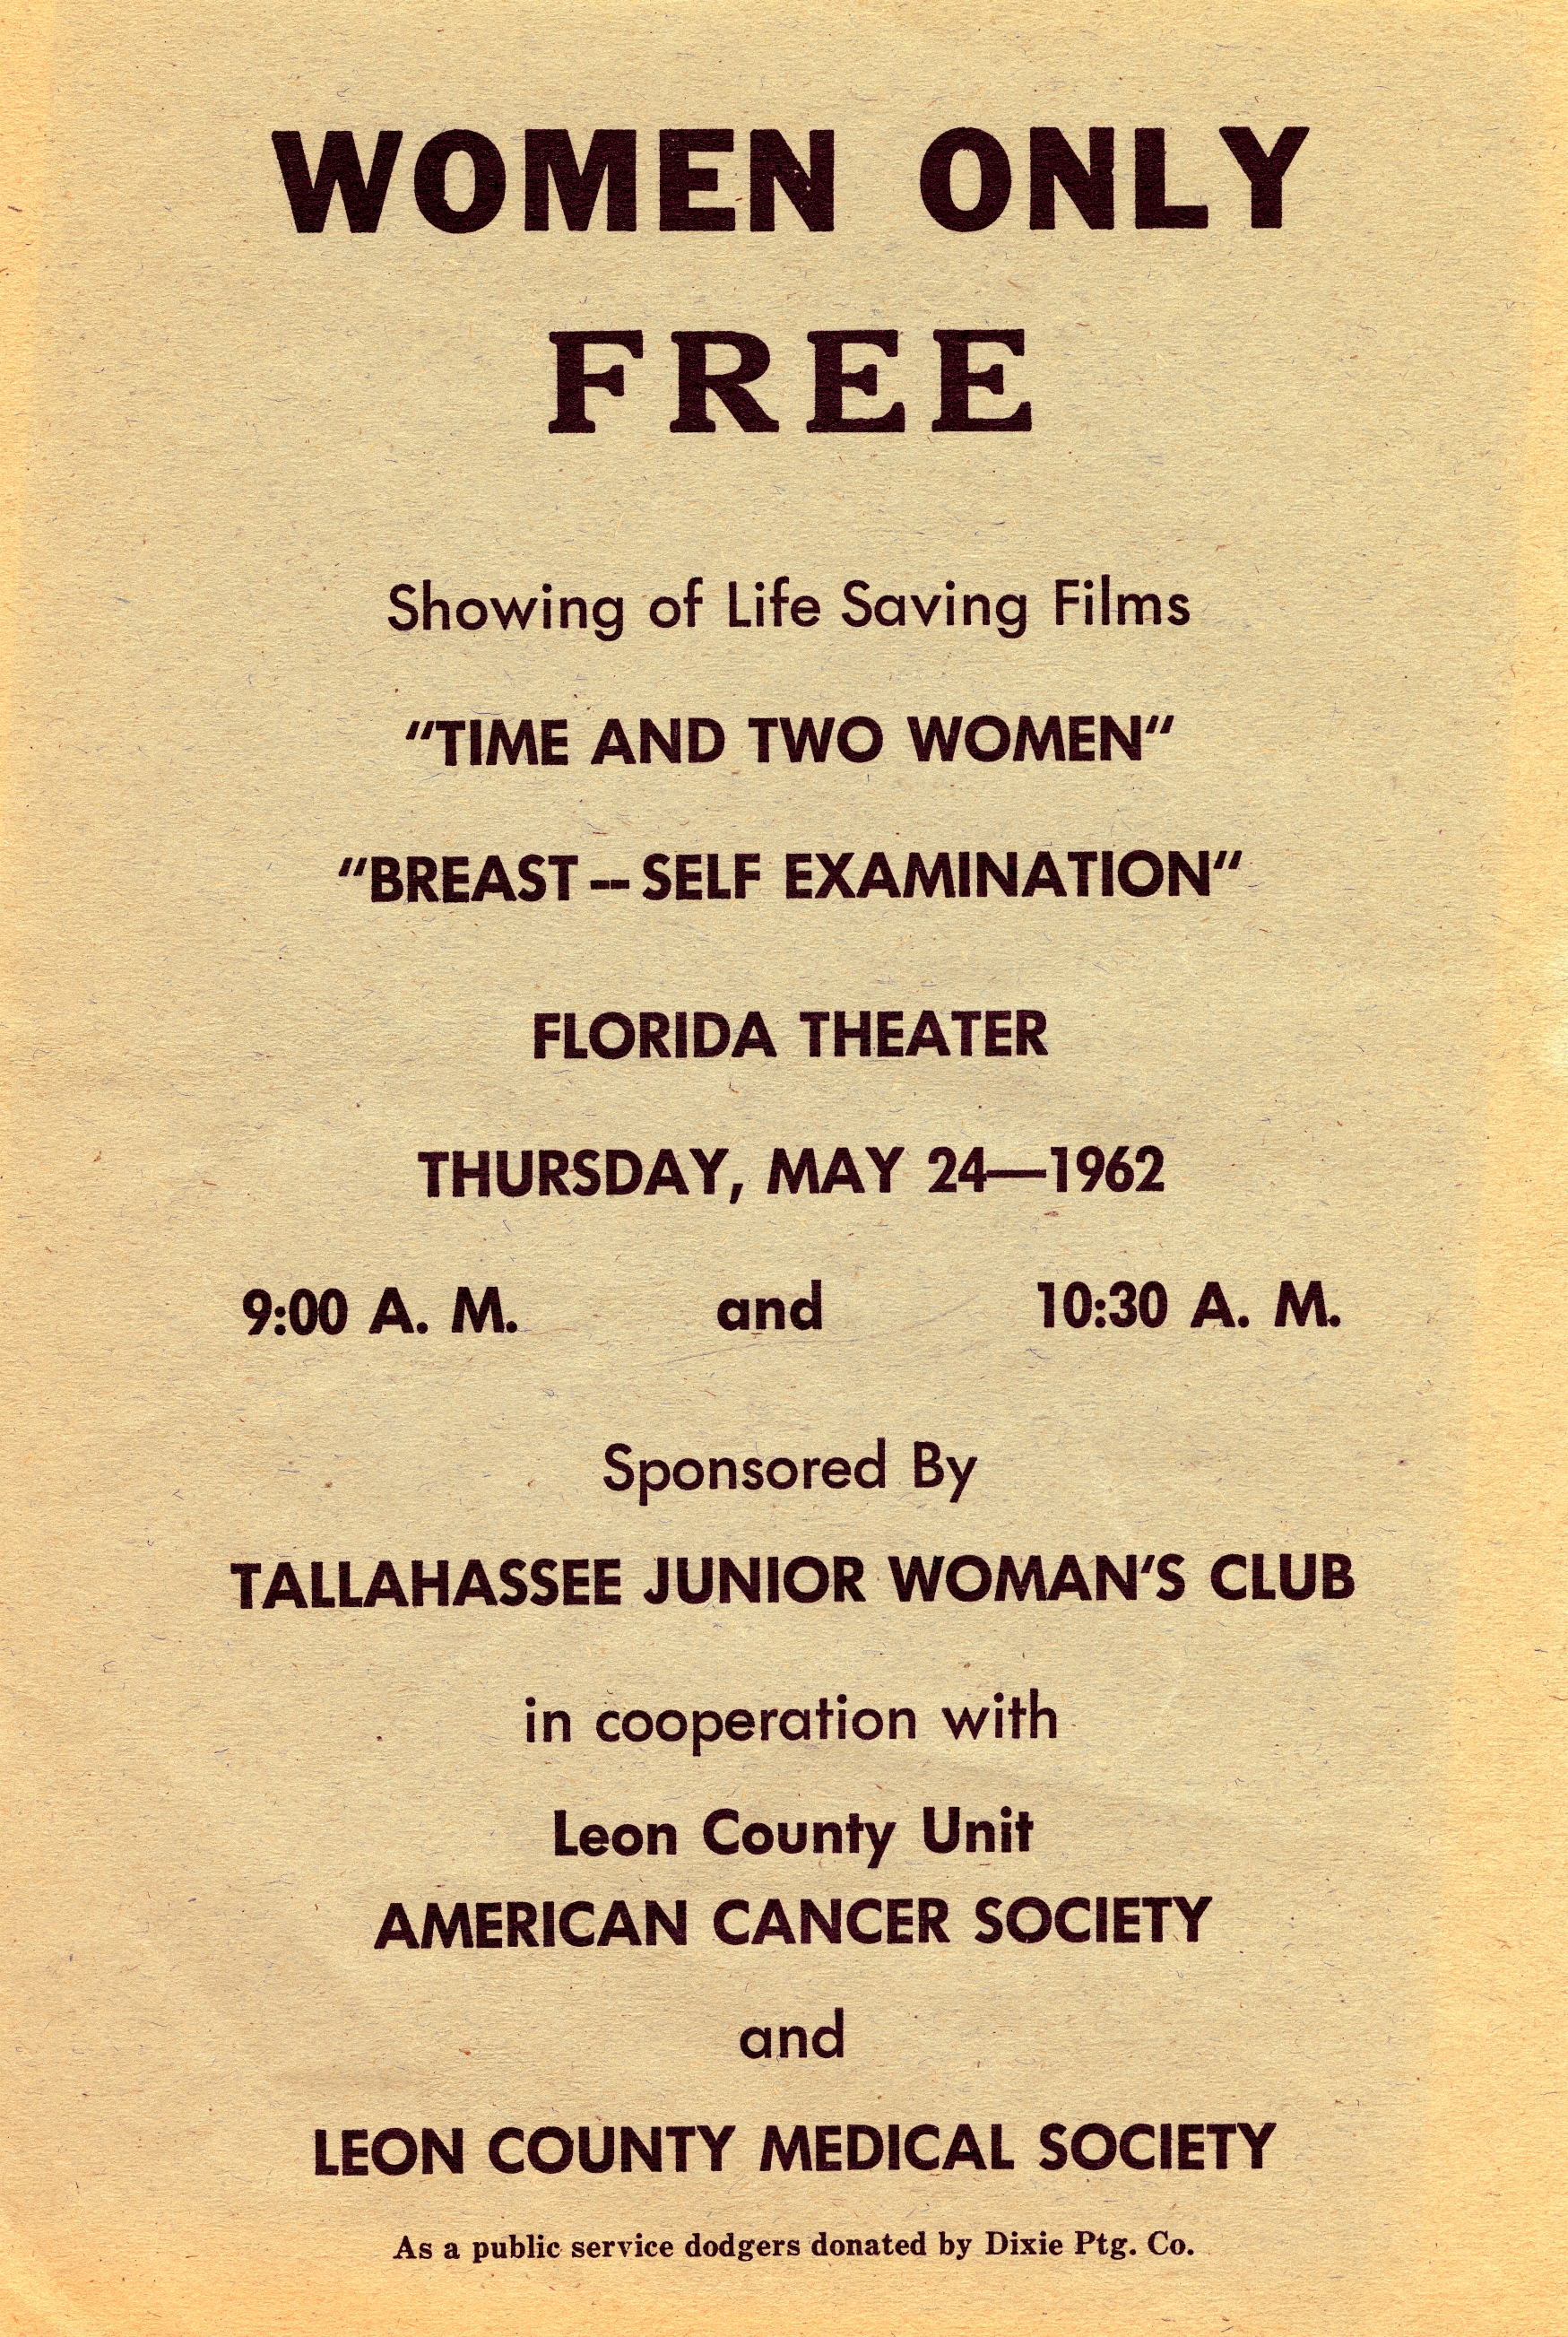 Women only, showing of life saving films, 'Time and Two Women' and 'Breast--Self Examination'.